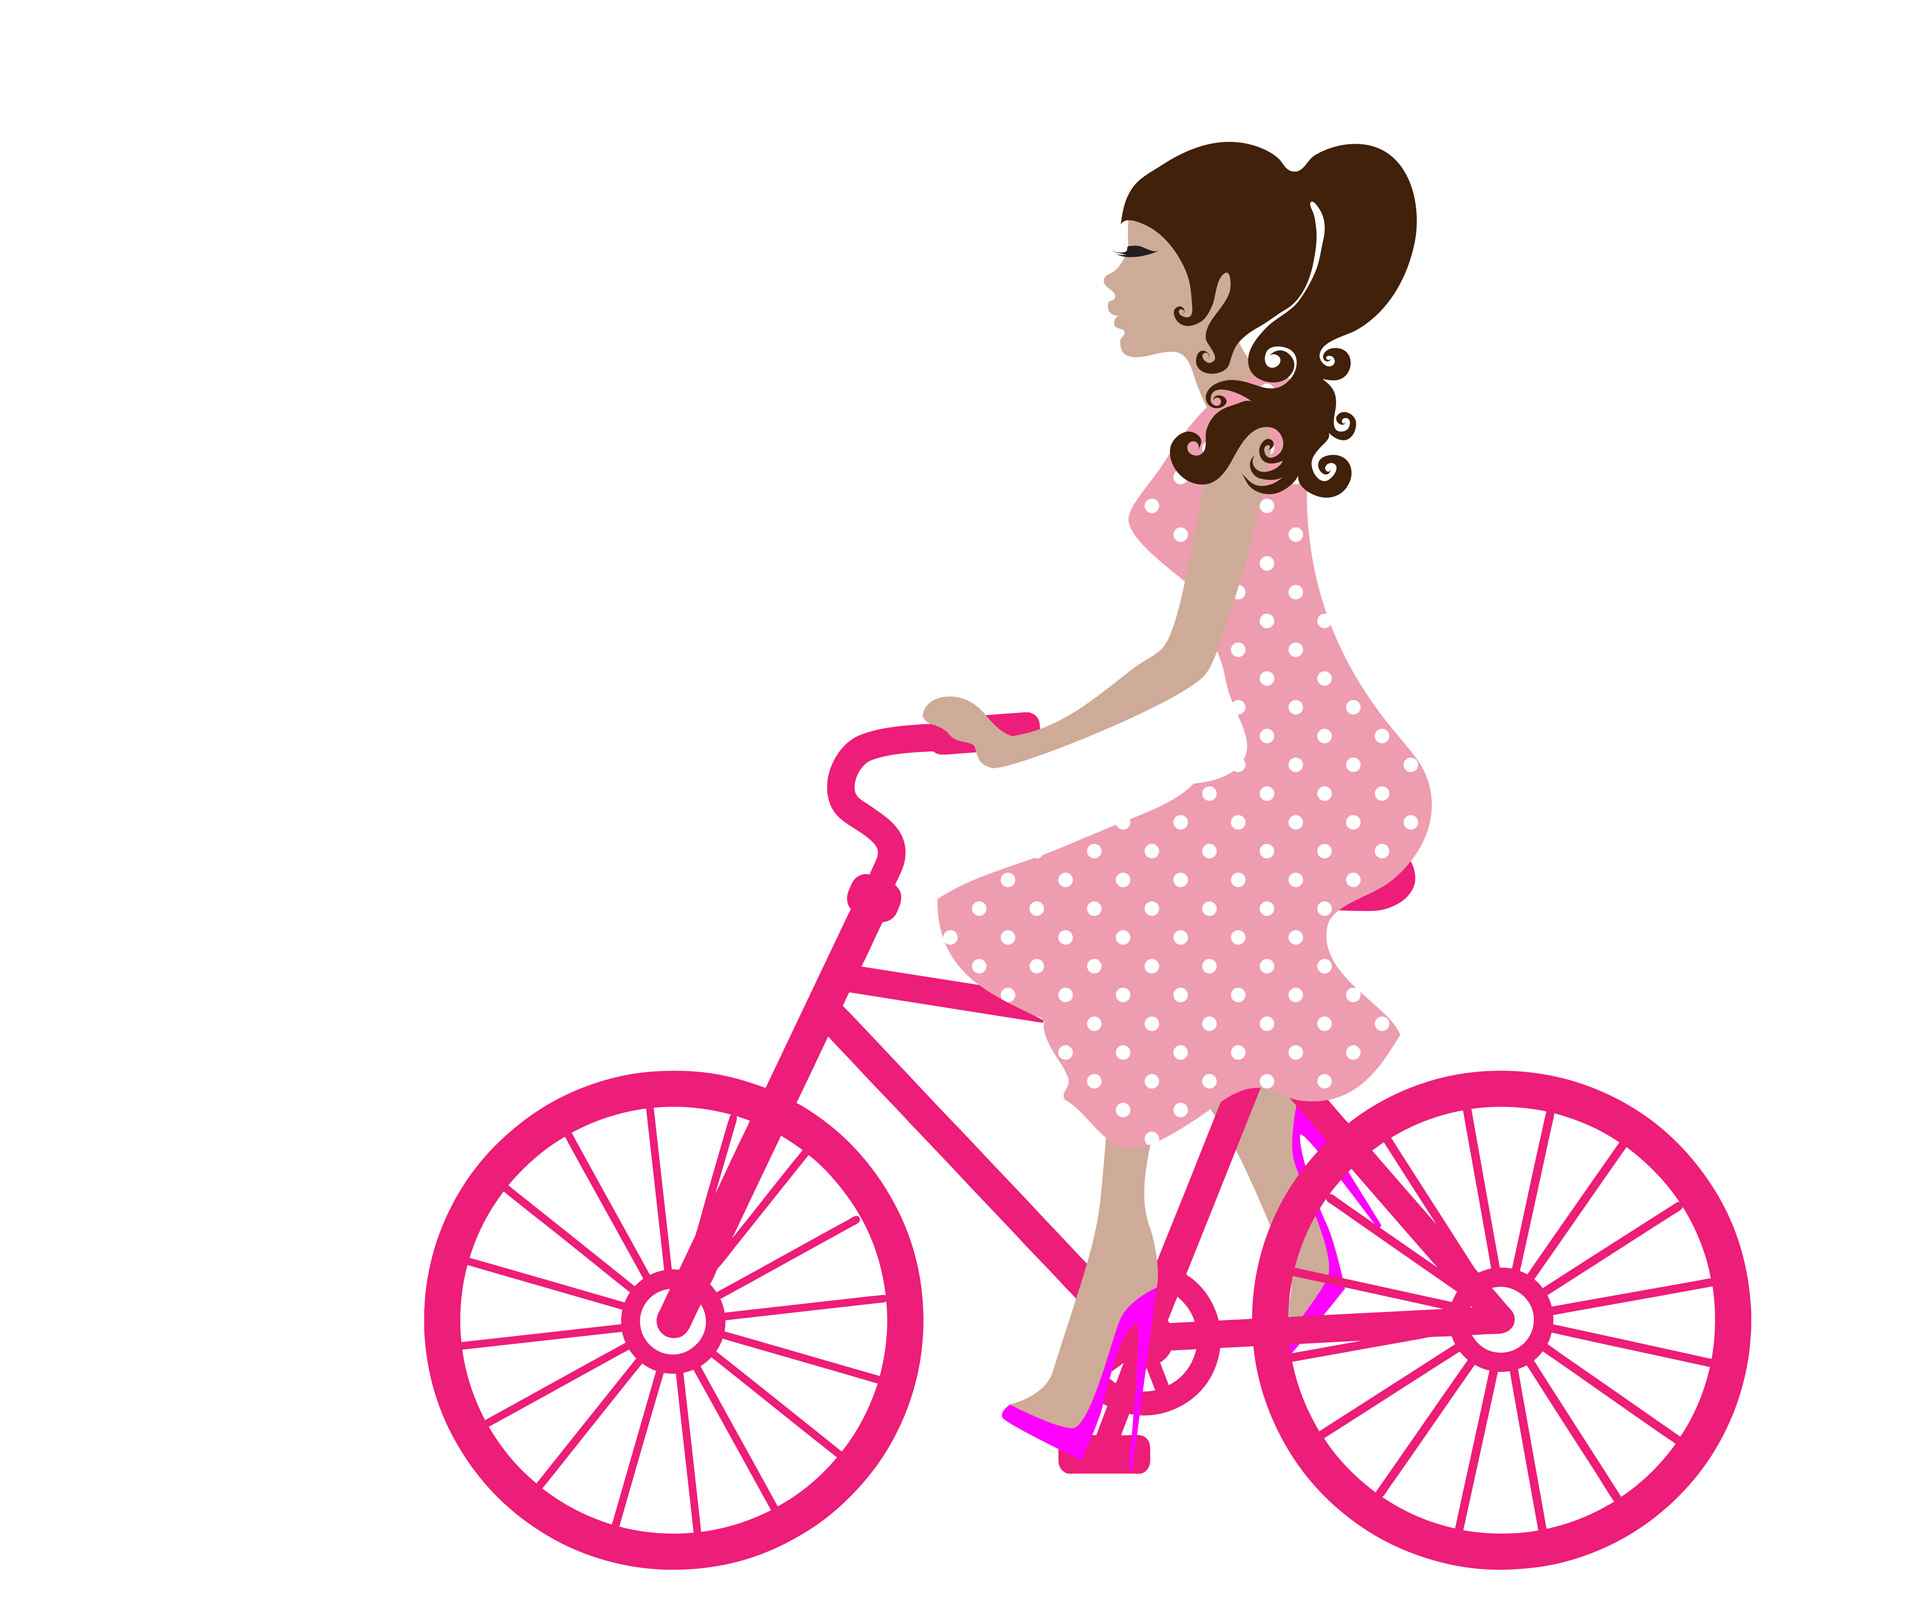 Cycling clipart girl paris. On bike free stock